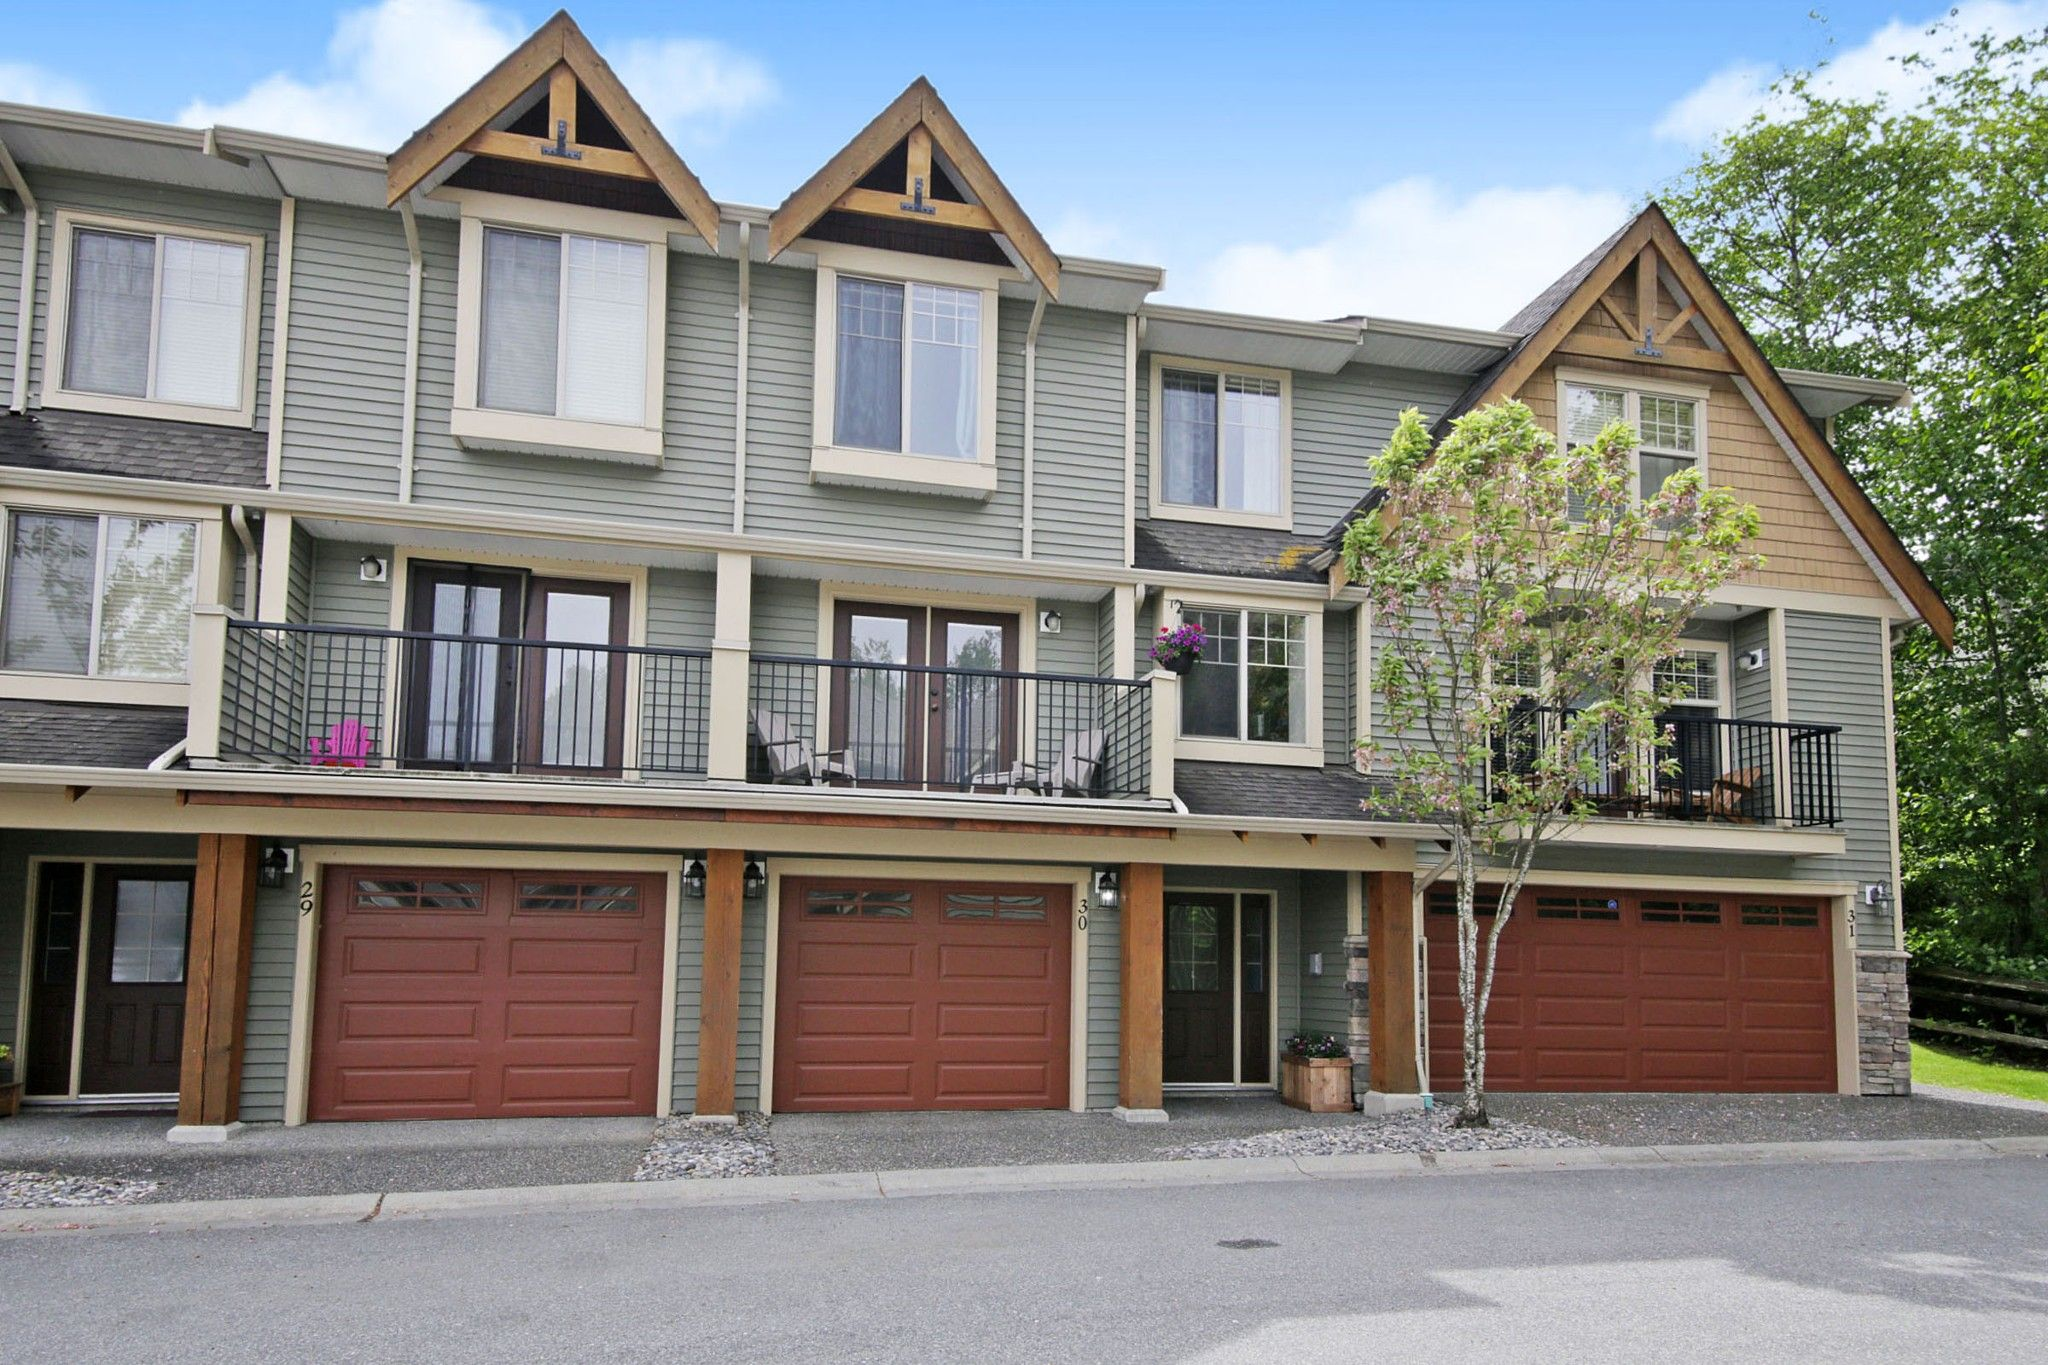 """Main Photo: 30 46840 RUSSELL Road in Chilliwack: Promontory Townhouse for sale in """"TIMBER RIDGE"""" (Sardis)  : MLS®# R2577468"""